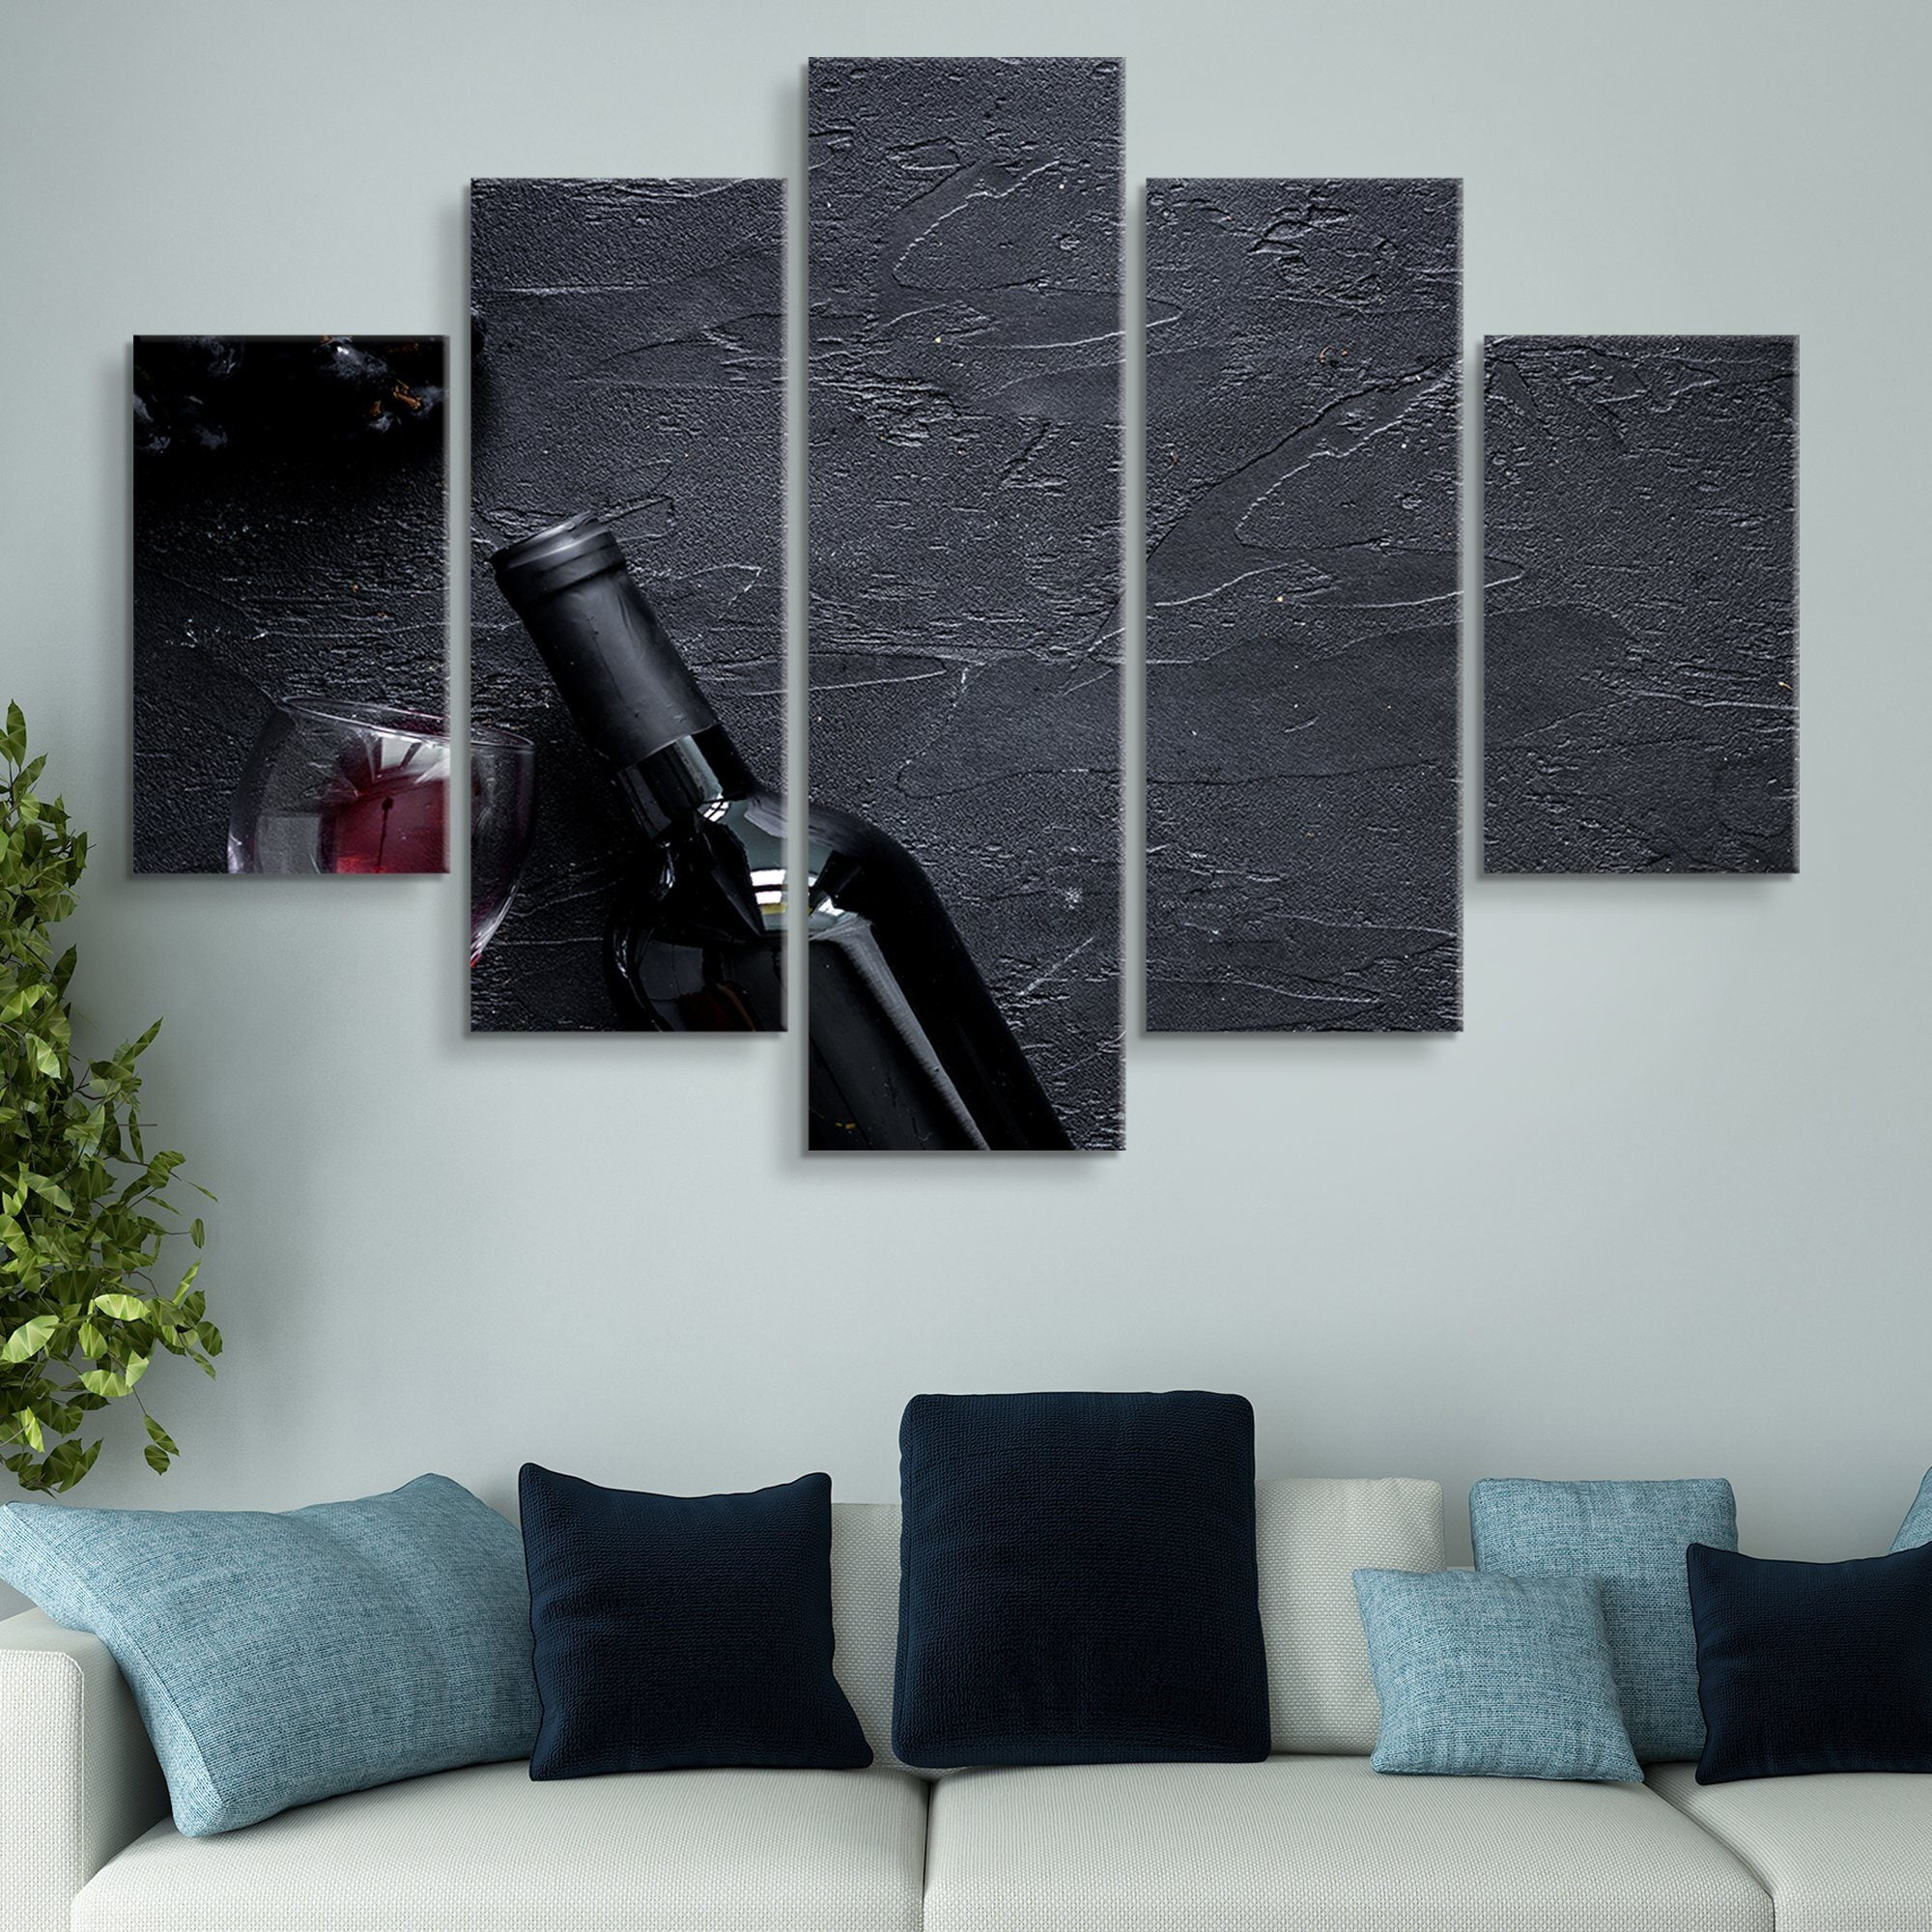 5 piece Red Wine wall art